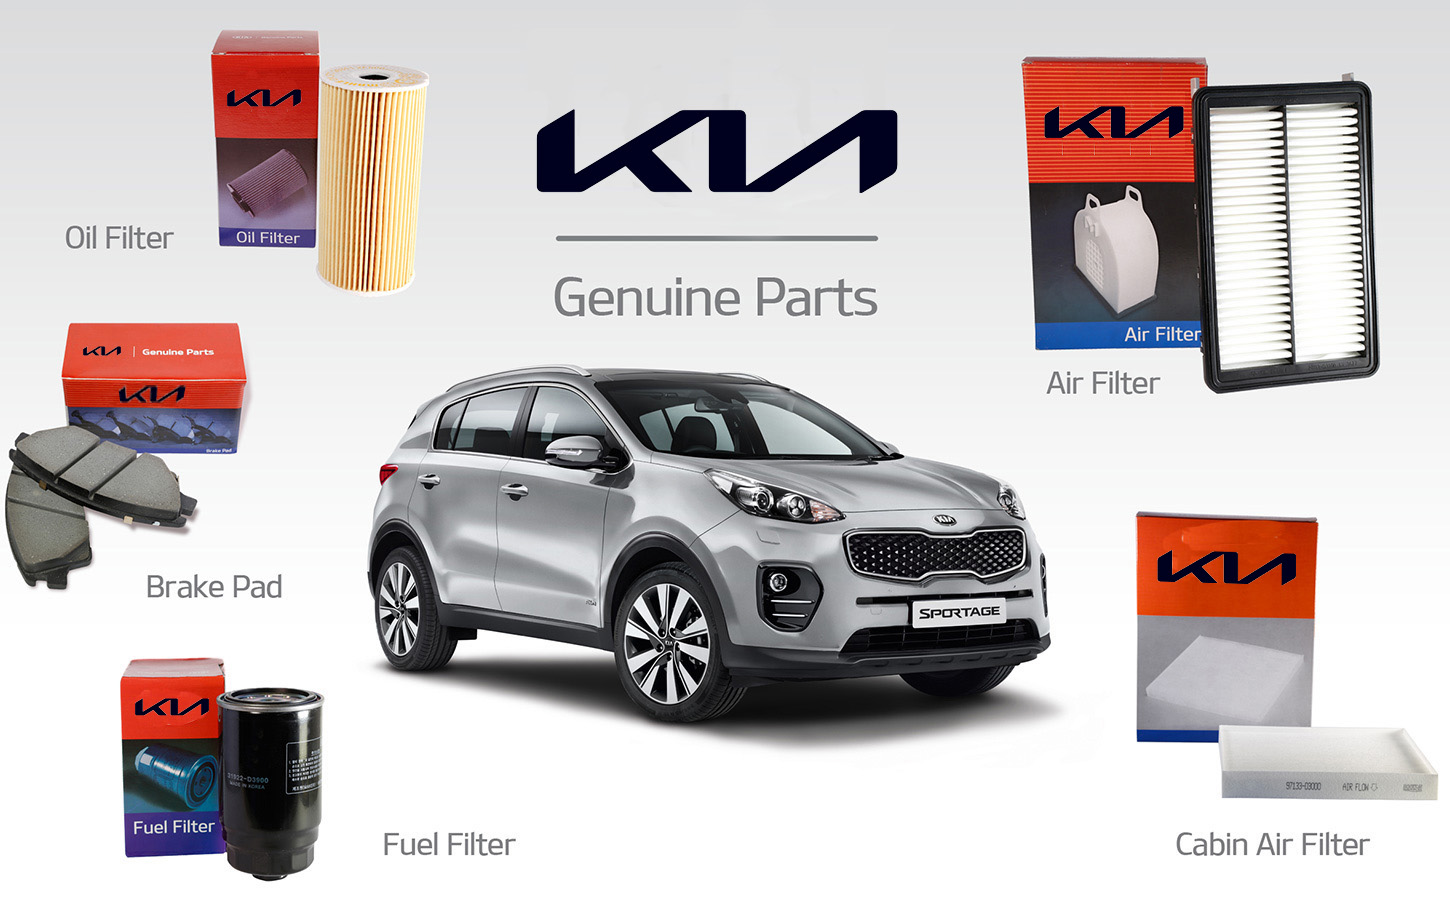 Kia Parts Department